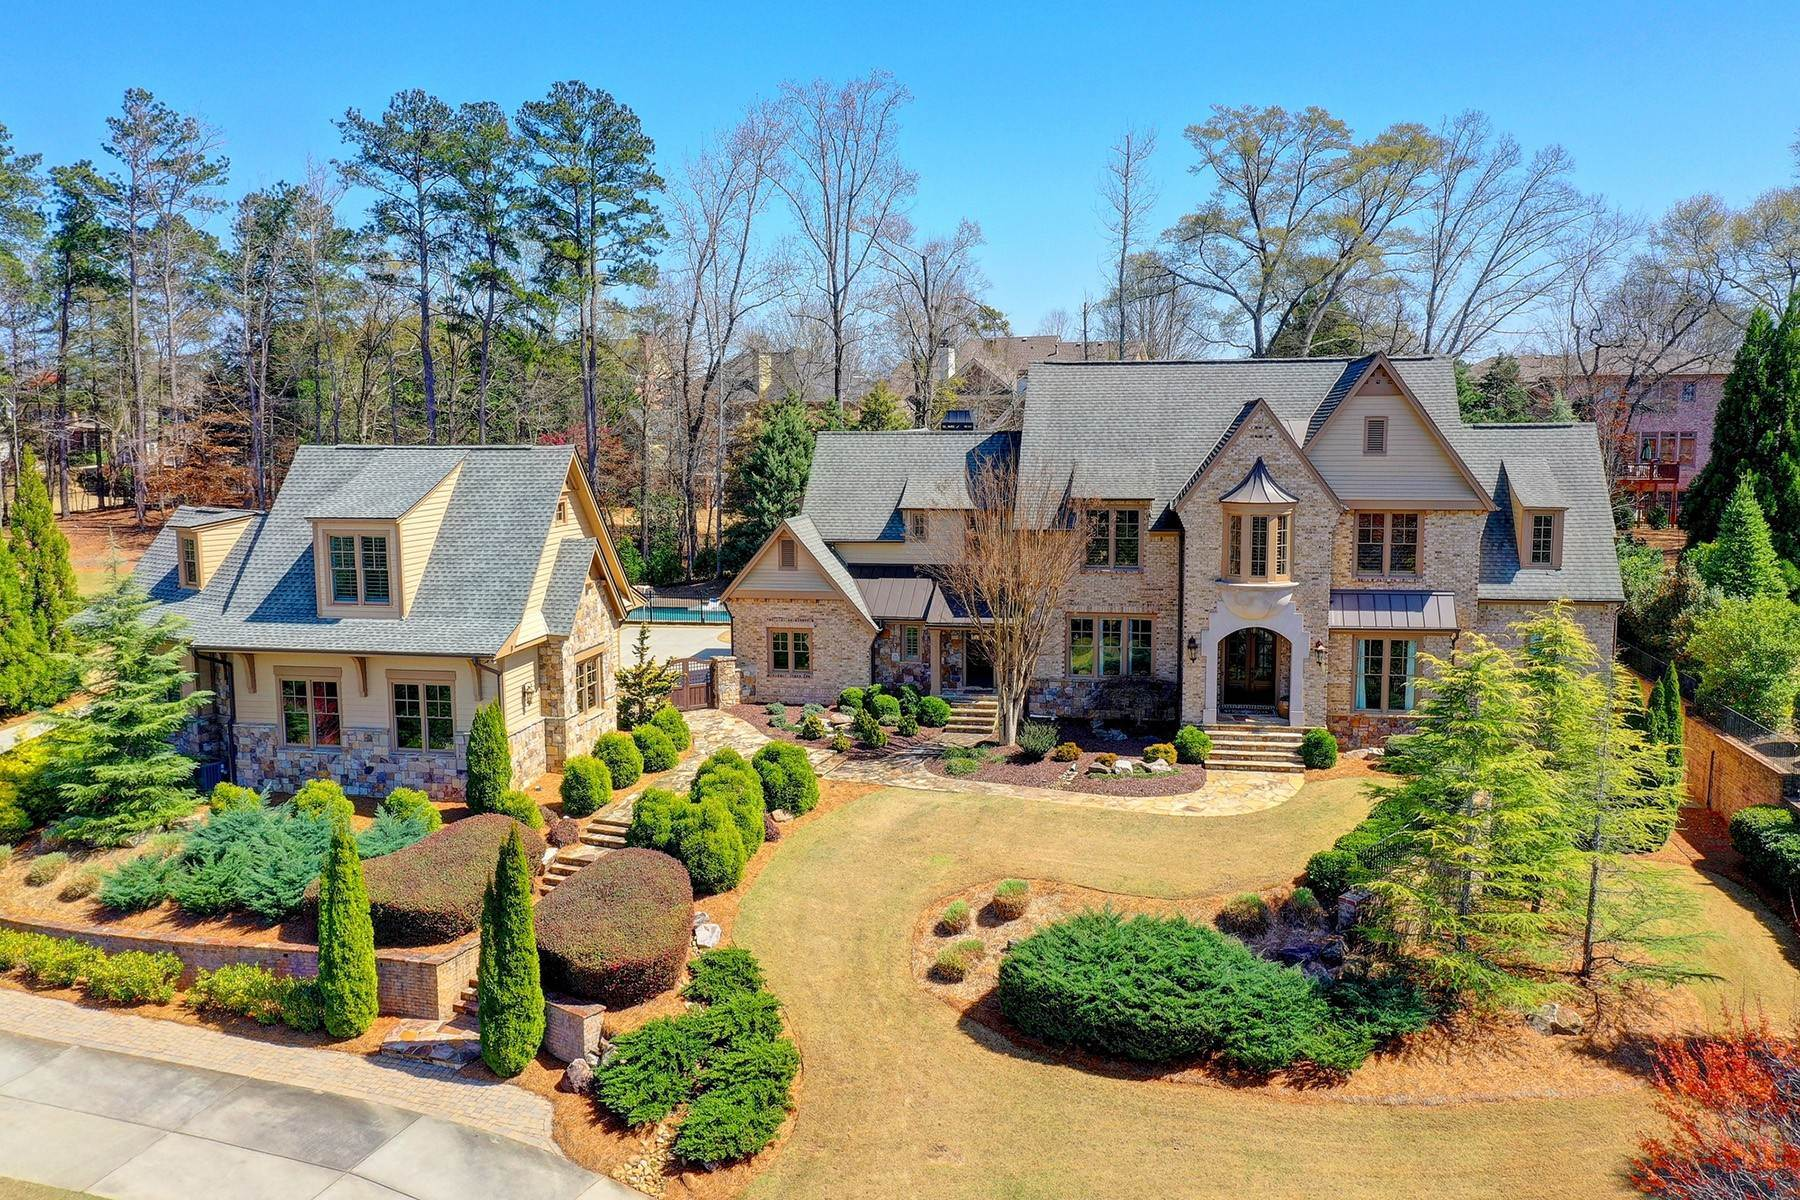 Single Family Homes for Sale at Your Very Own Private Resort A Must See 4843 Ipswitch Glen Suwanee, Georgia 30024 United States